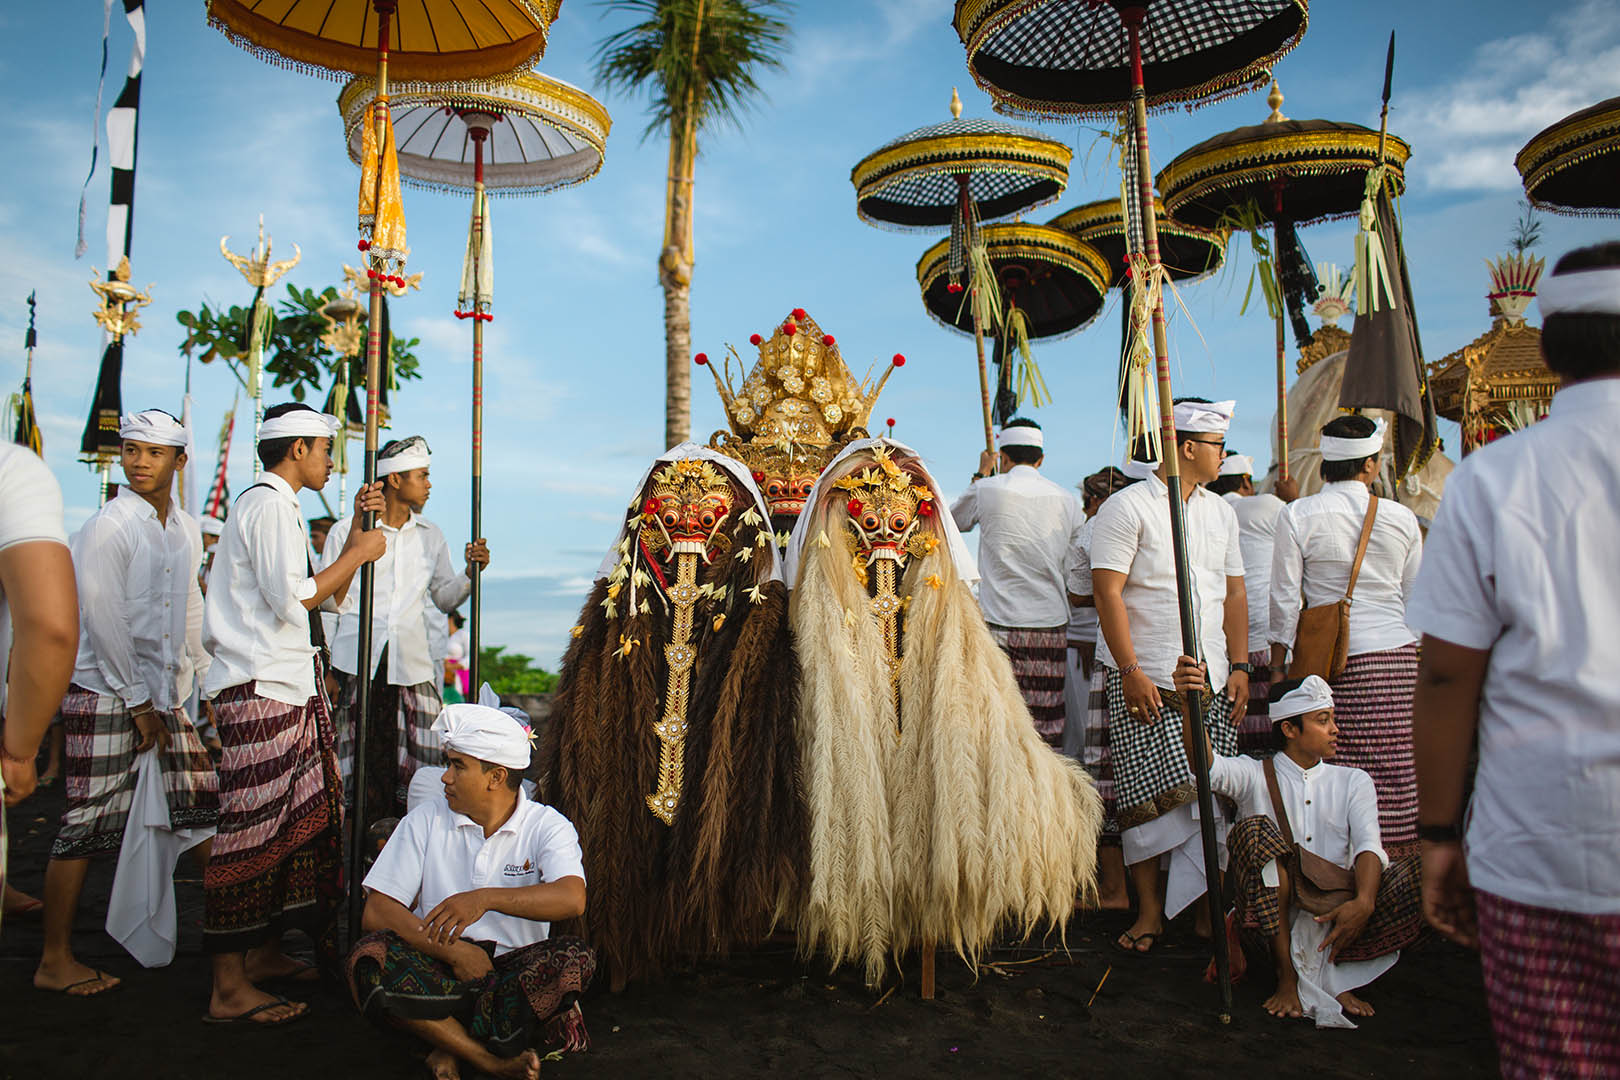 bali beach ceremony (1 of 1)lr